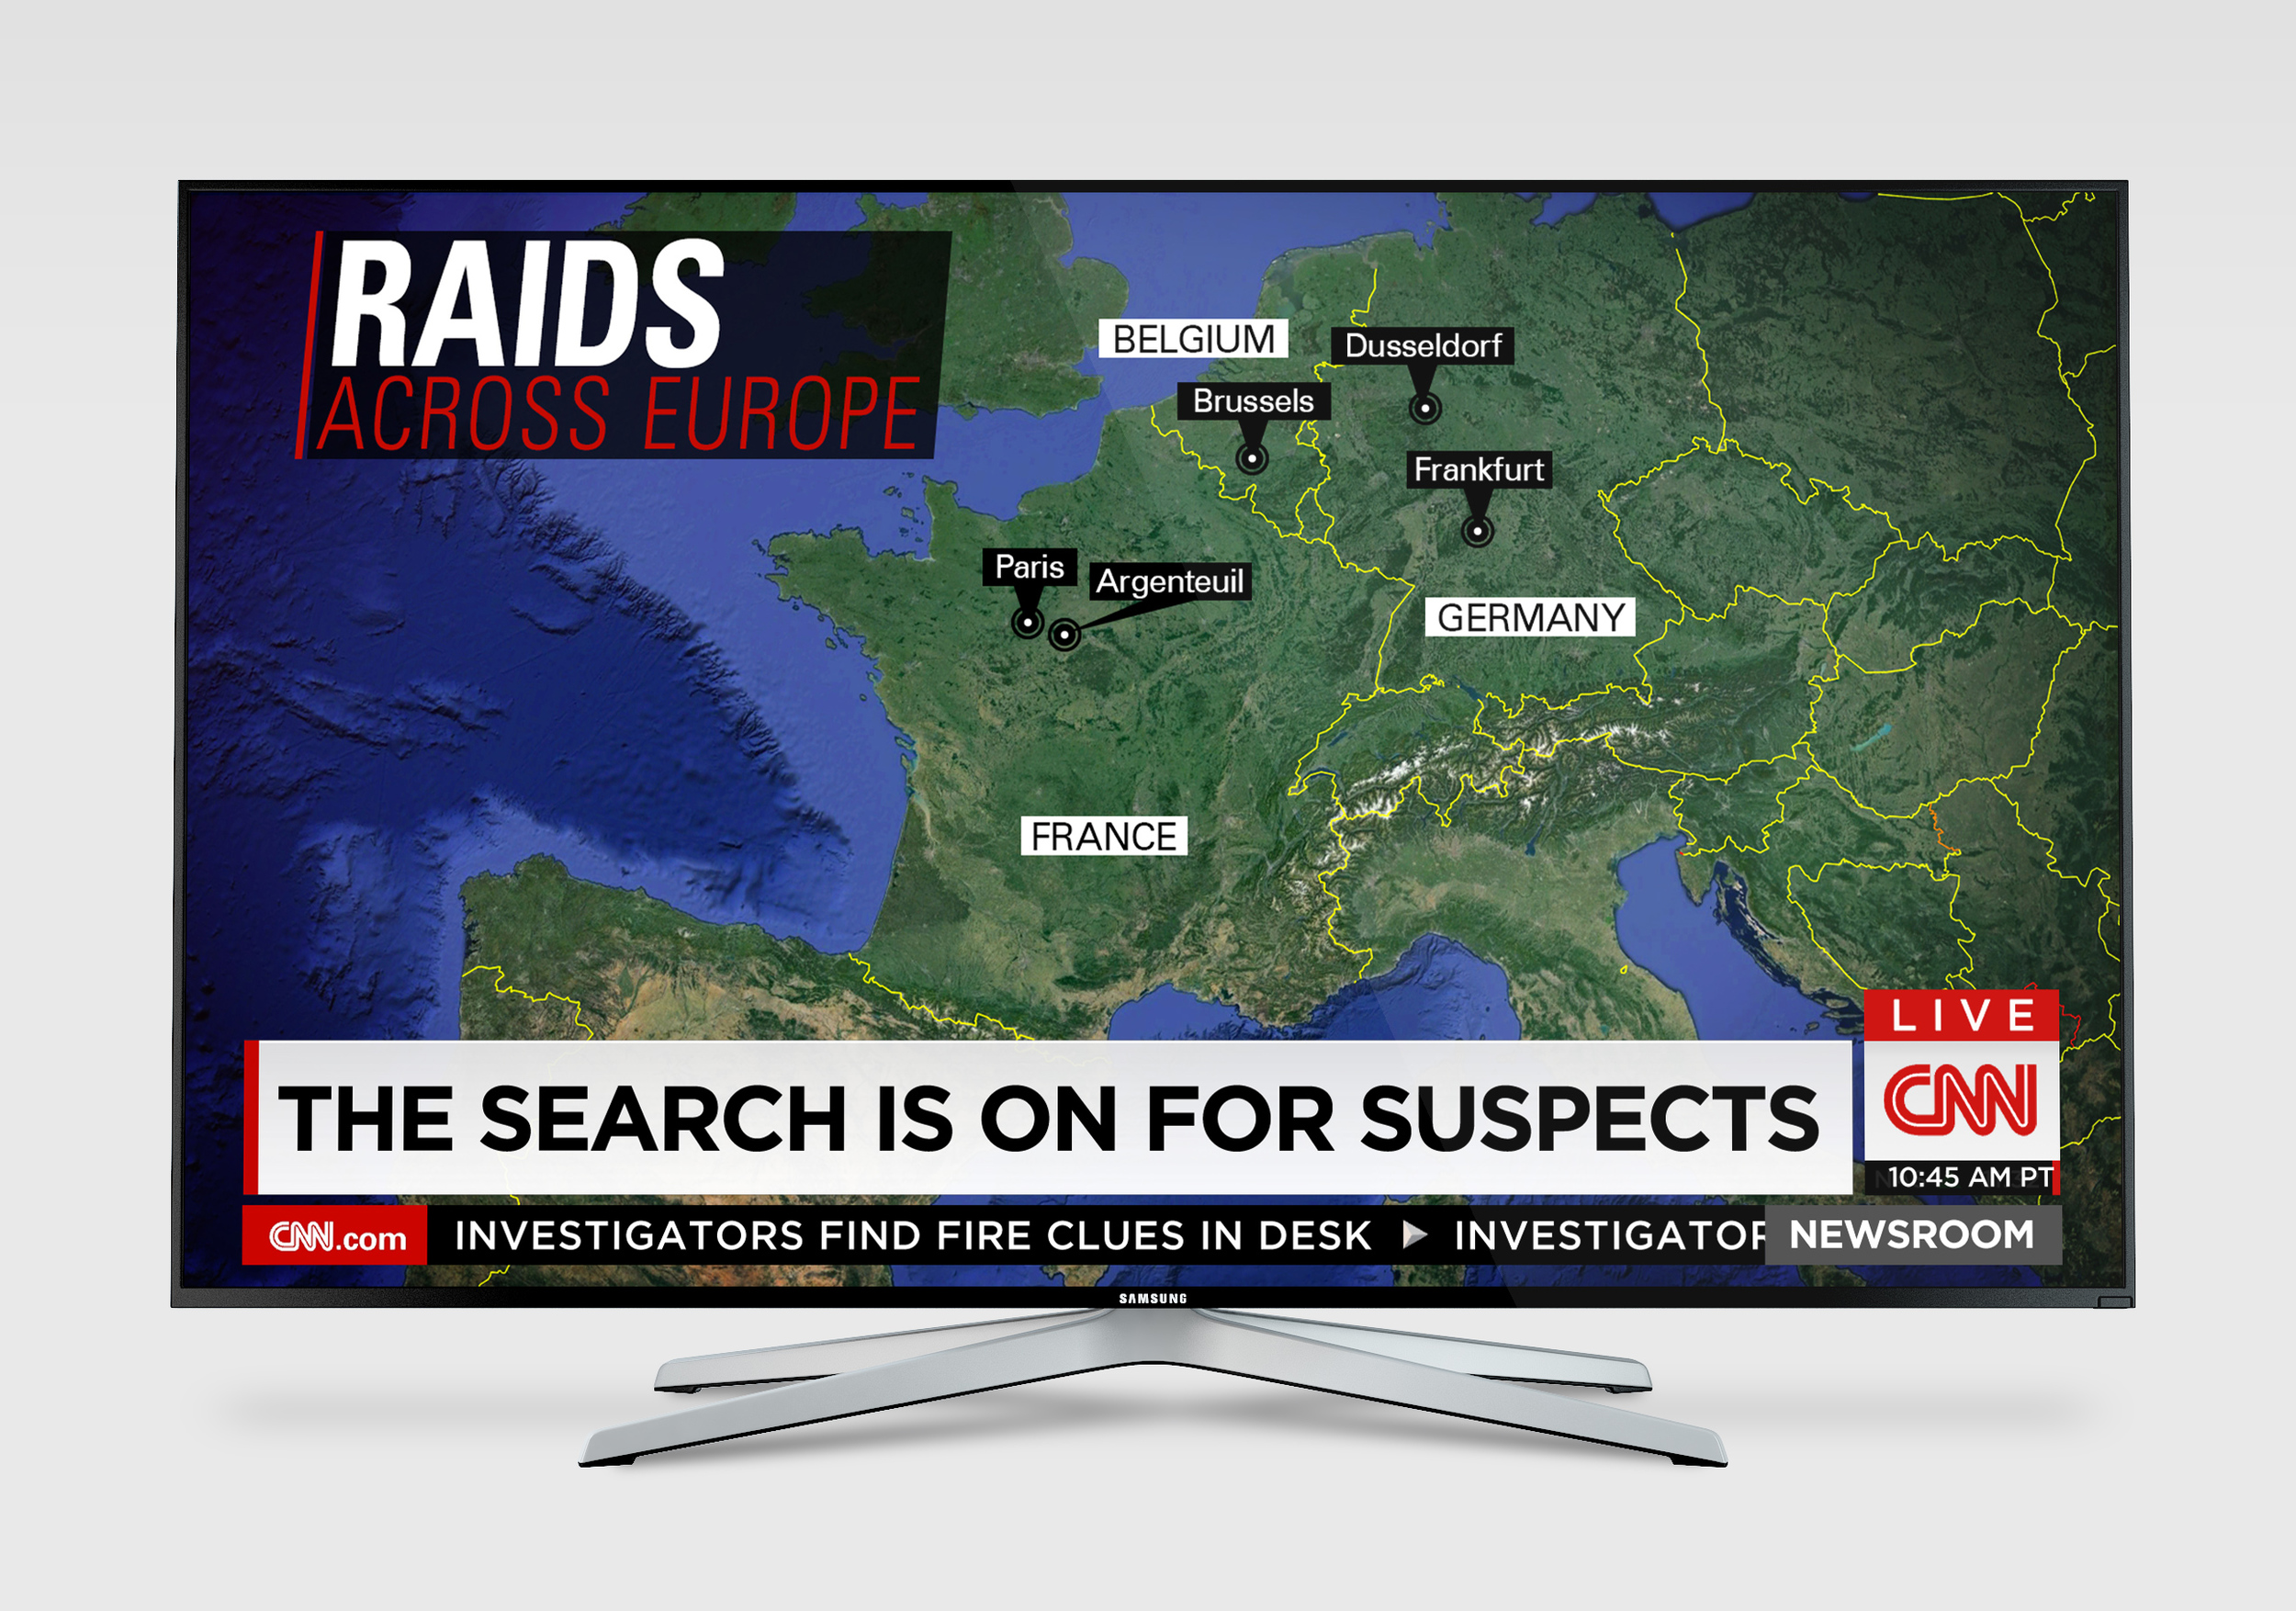 CNN-TV-MOCKUP-raids.jpg